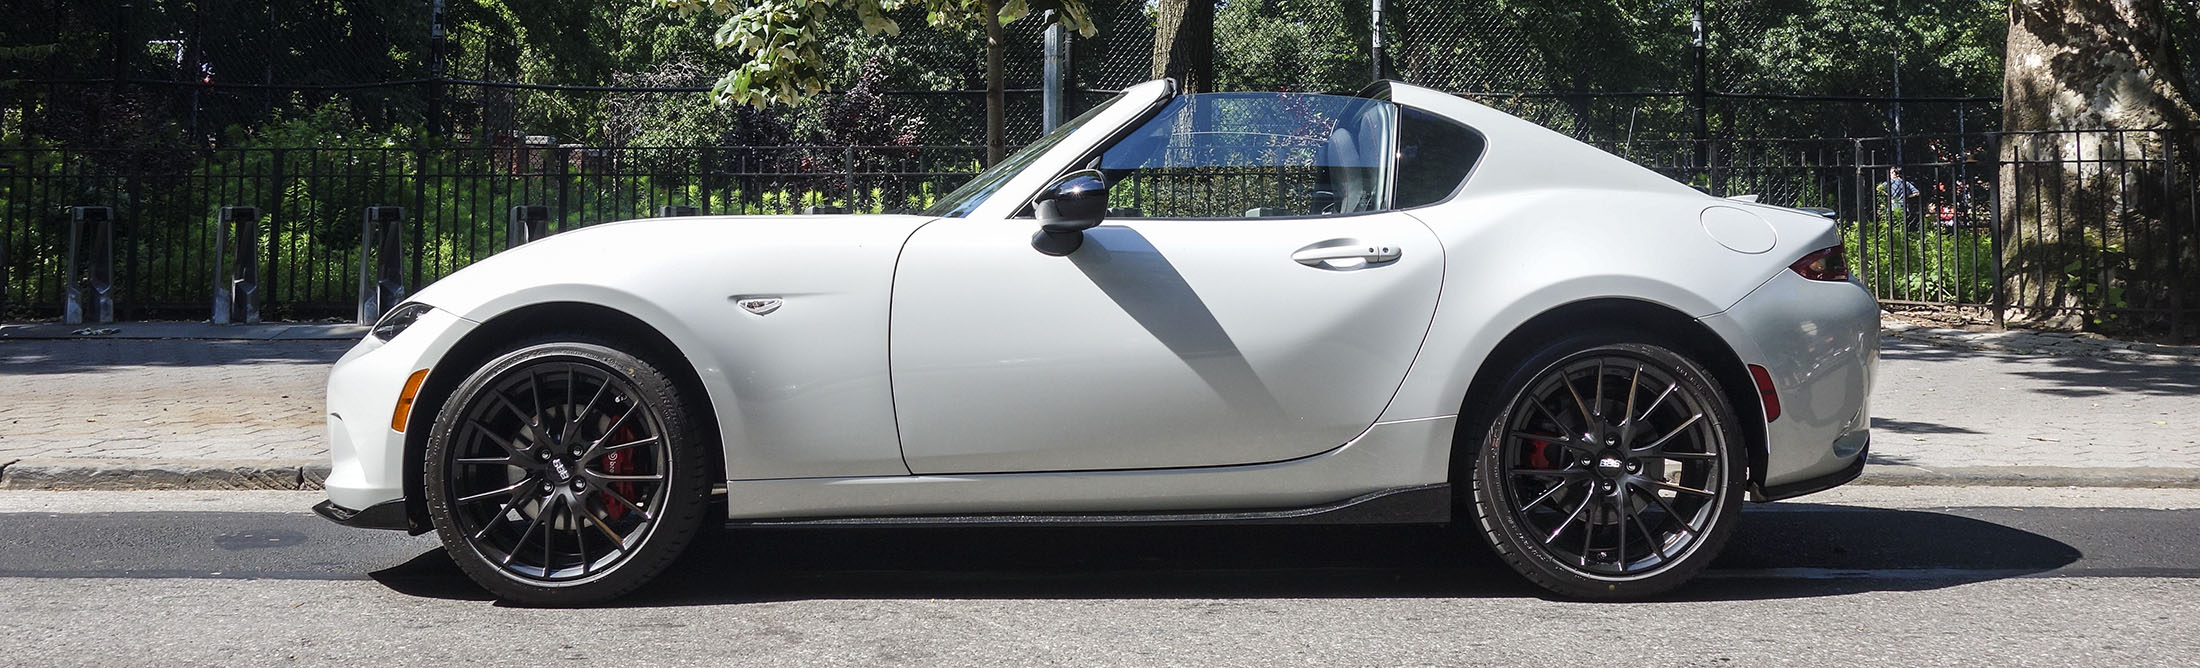 If You Can't Afford a Porsche 911, Buy the Mazda MX-5 RF